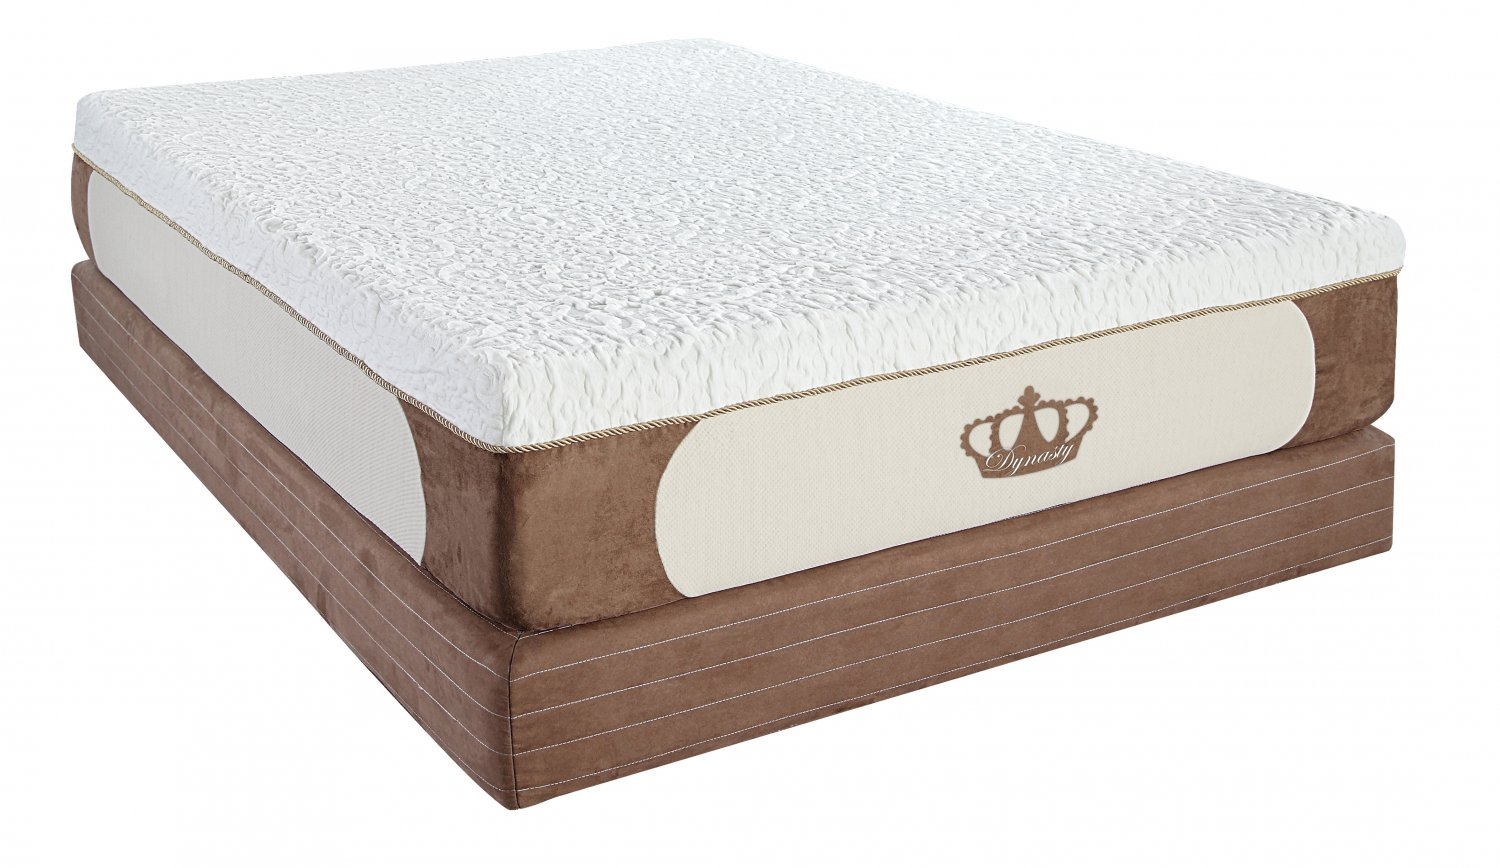 14 grand coolbreeze gel memory foam mattress cal king size Memory foam king mattress